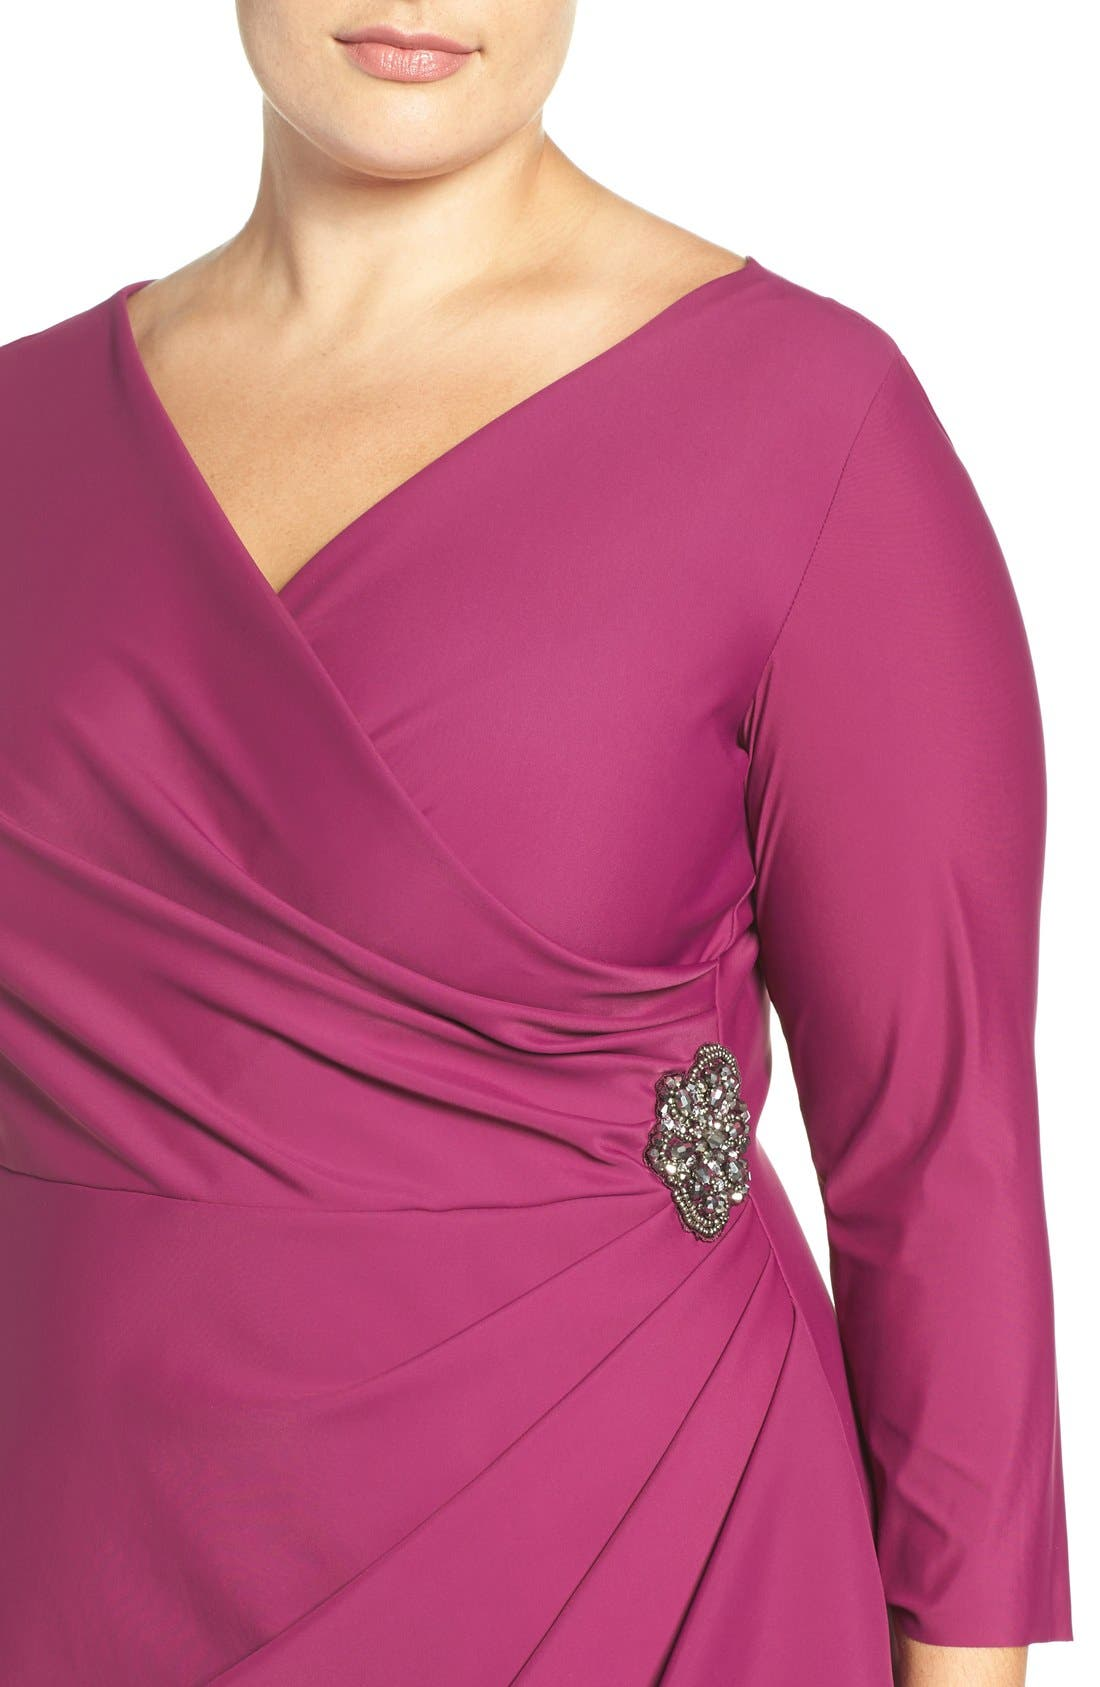 Embellished Surplice Sheath Dress,                             Alternate thumbnail 5, color,